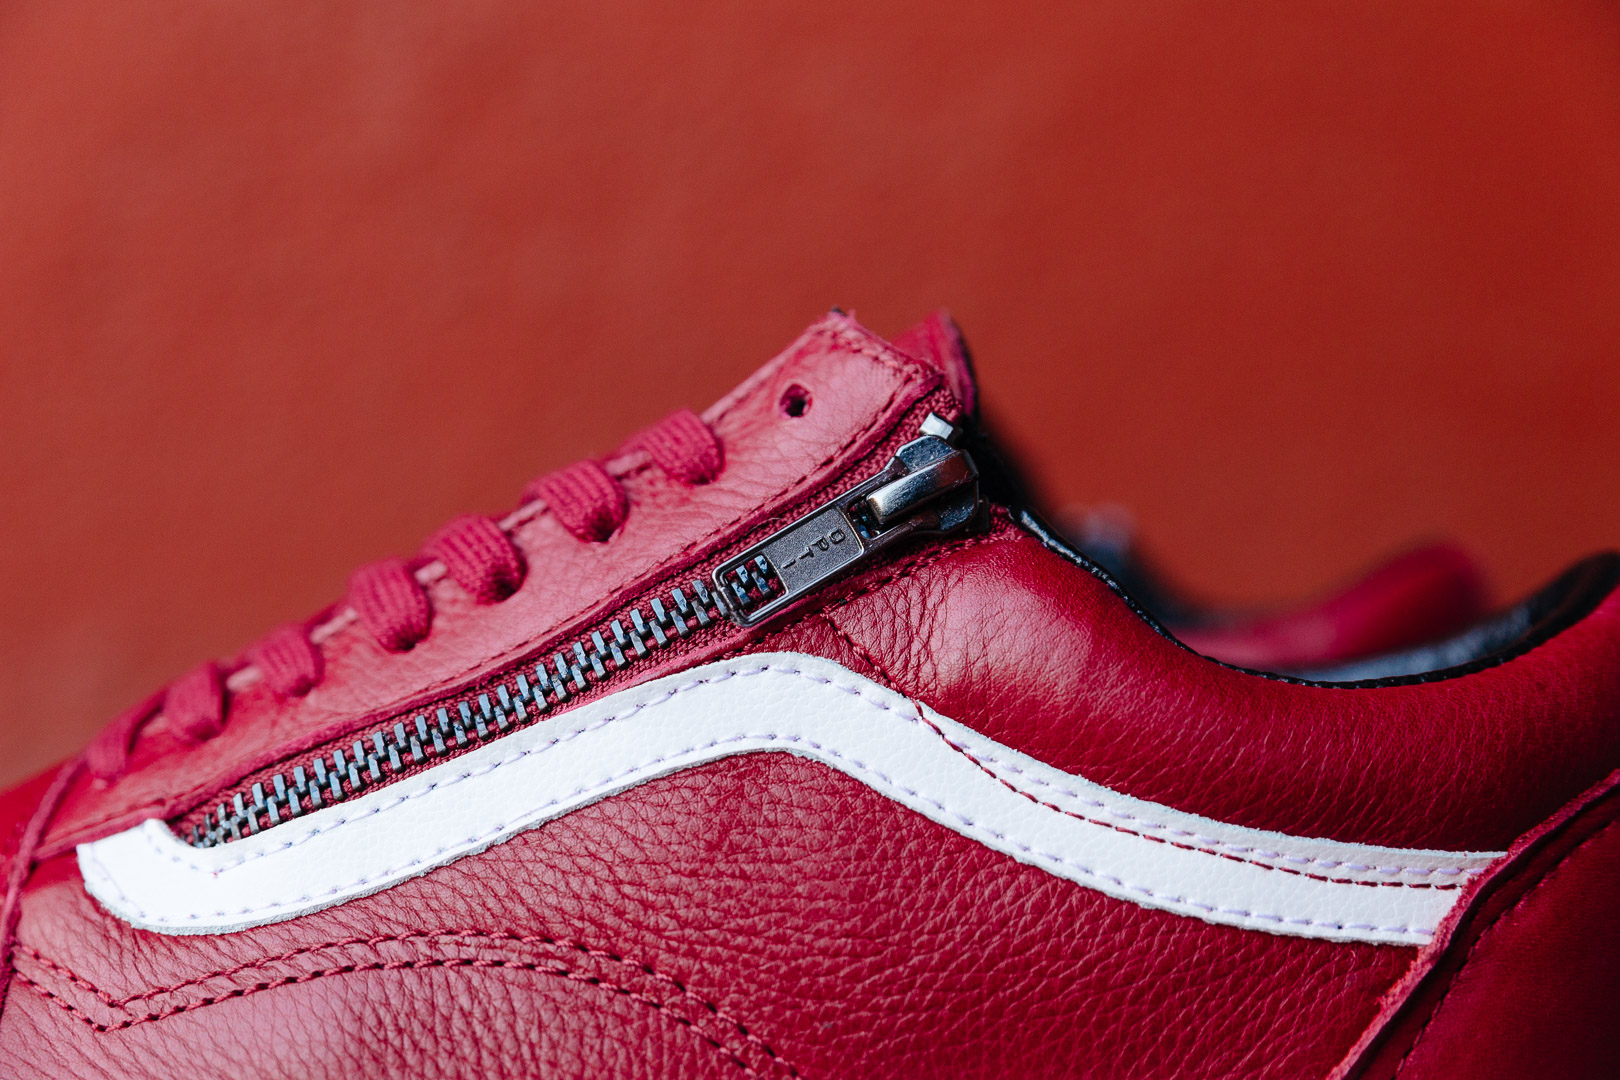 VANS-OLD-SKOOL-ZIP-PREMIUM-LEATHER-CHILI-PEPPER-RED-WHITE-V0018GJTH-2580-INS-SoleHeaven-.jpg